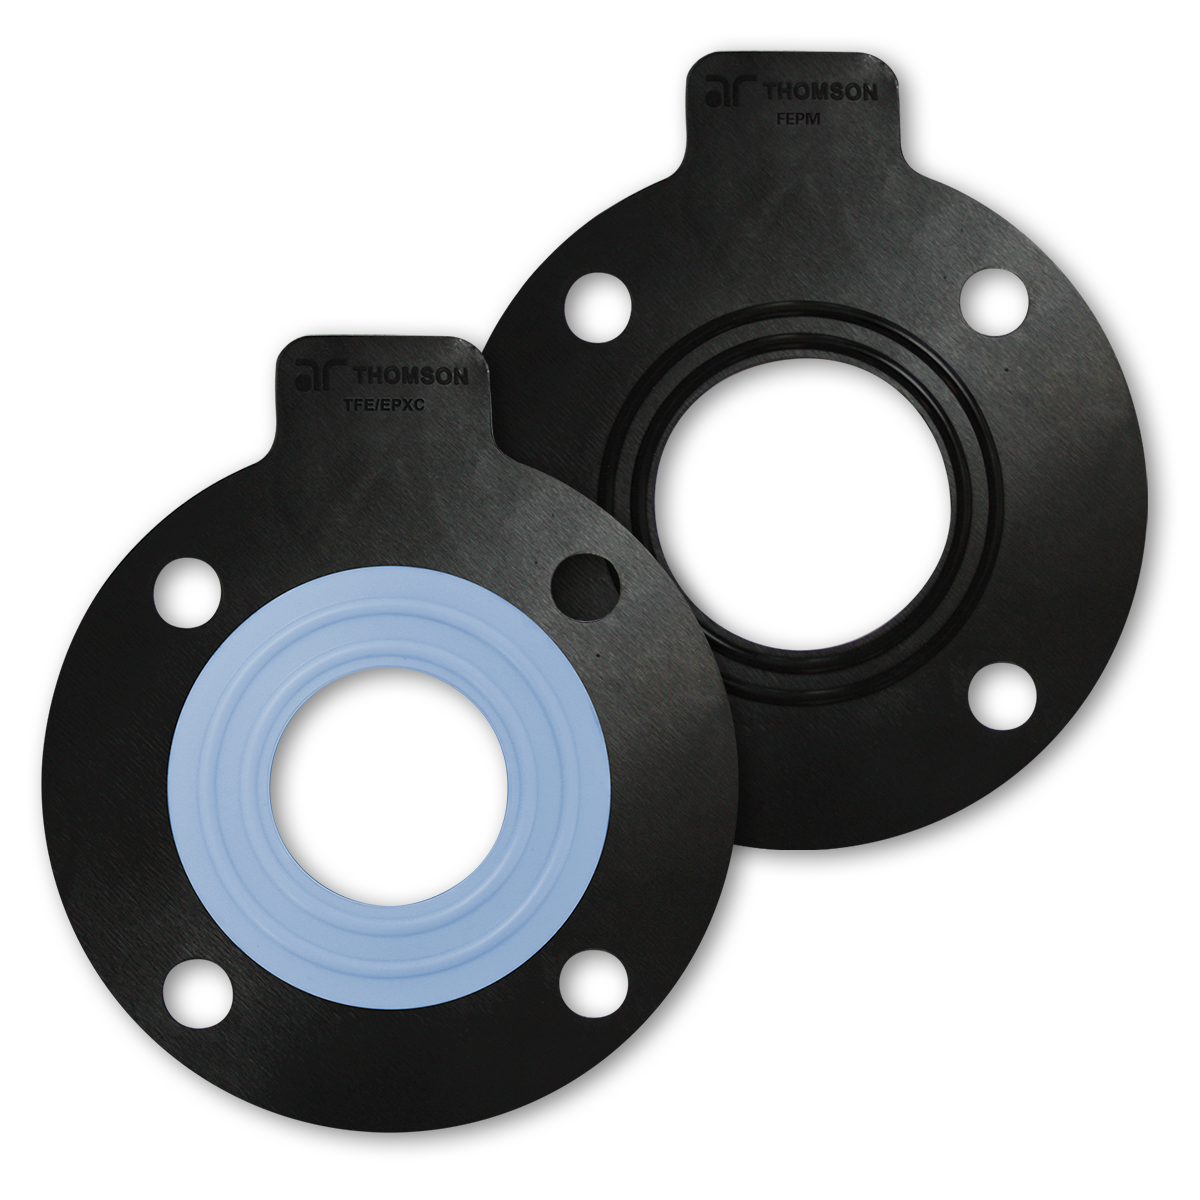 low stress to seal flange gaskets